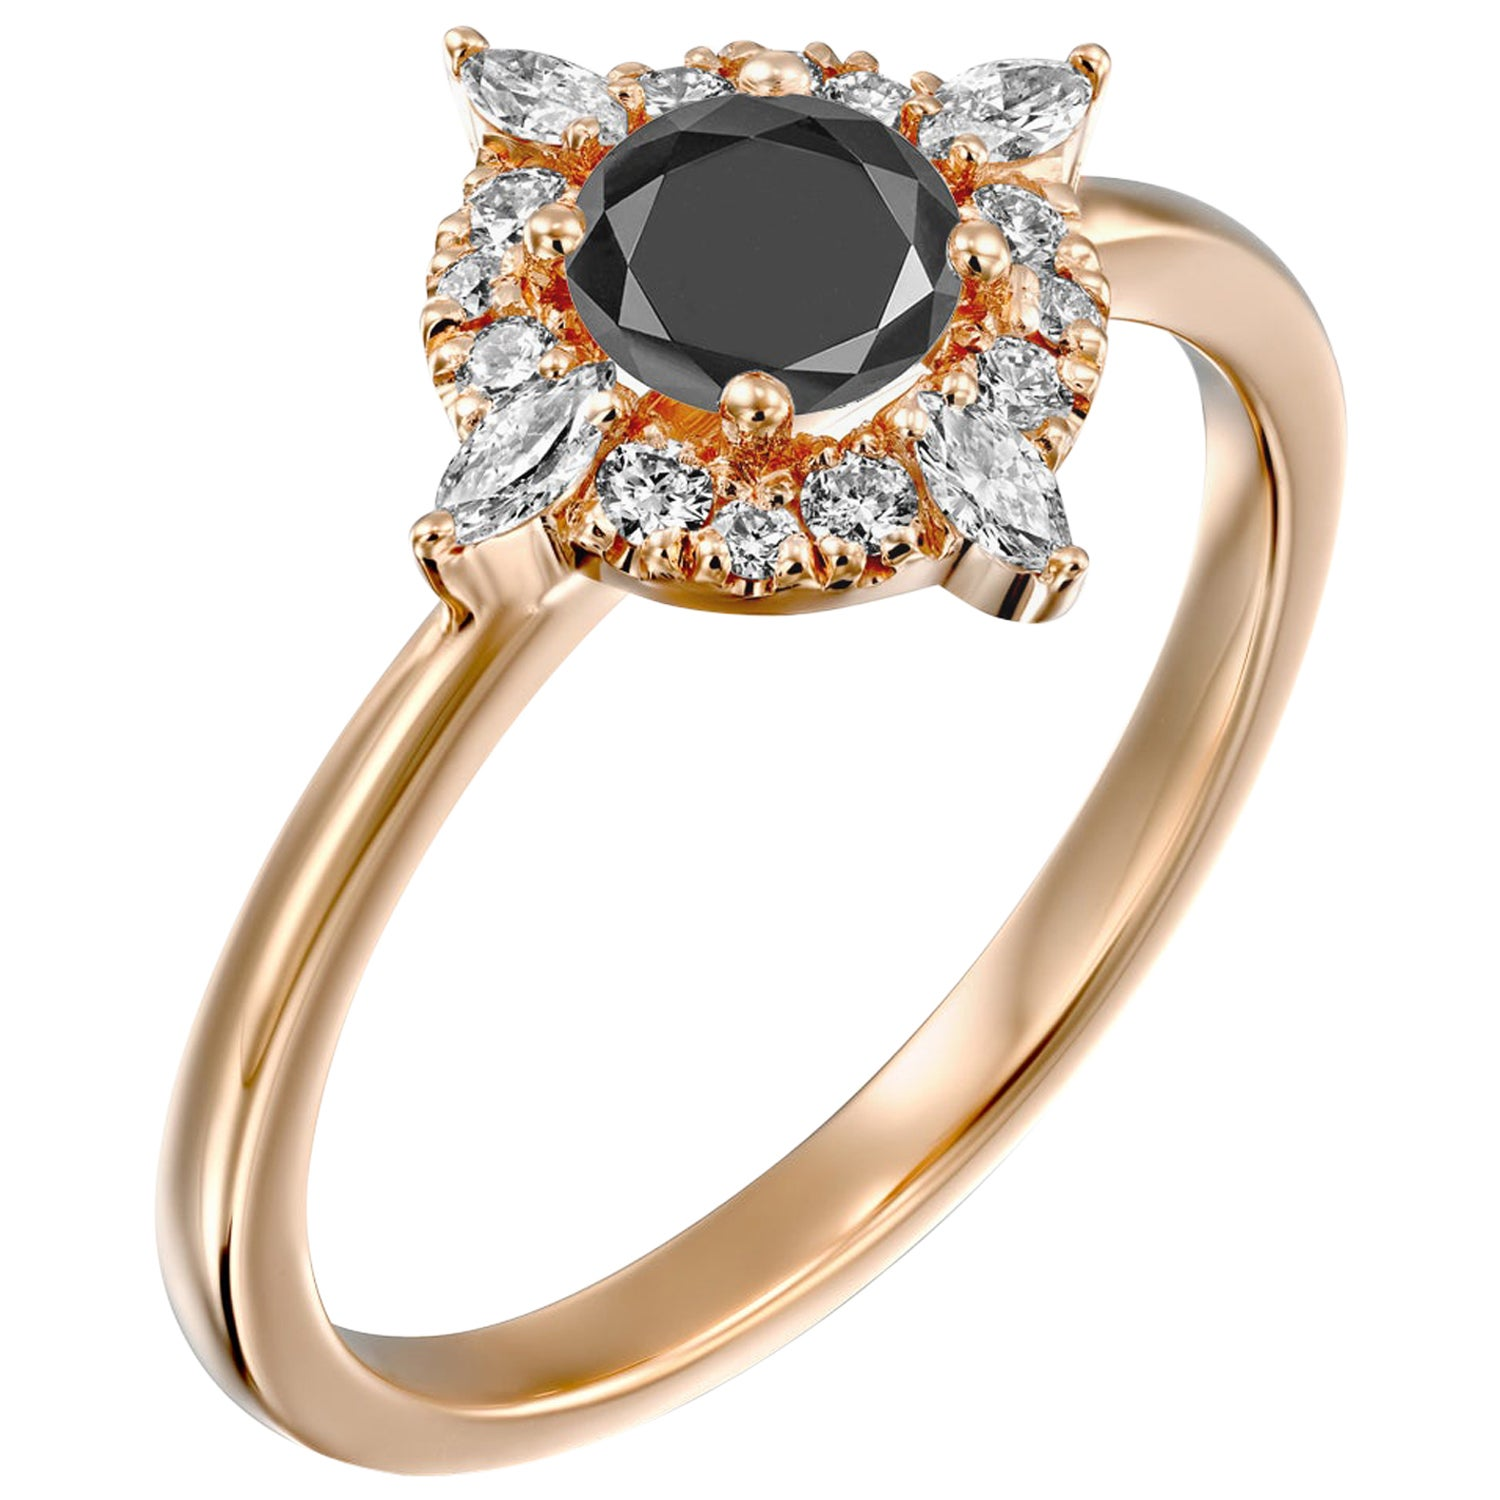 1 1/4 Carat 14 Karat Rose Gold Certified Round Black Diamond Engagement Ring